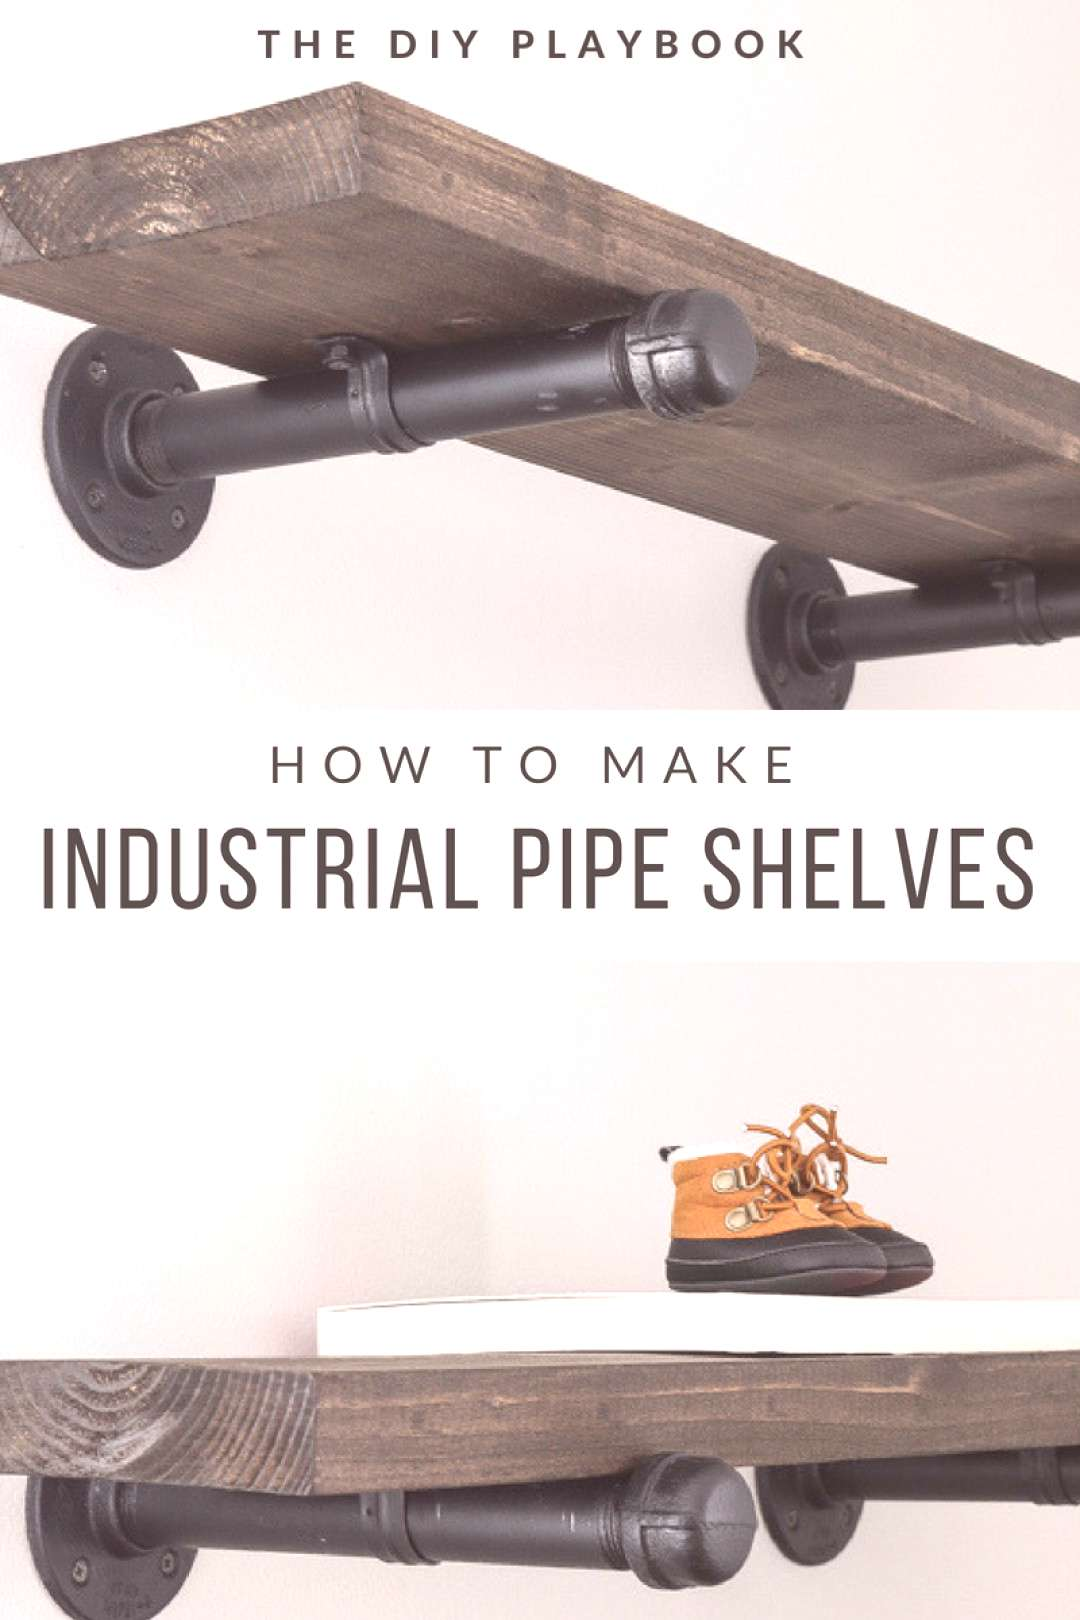 How to make industrial pipe shelves on the cheap. This inexpensive DIY project is a great way to ad